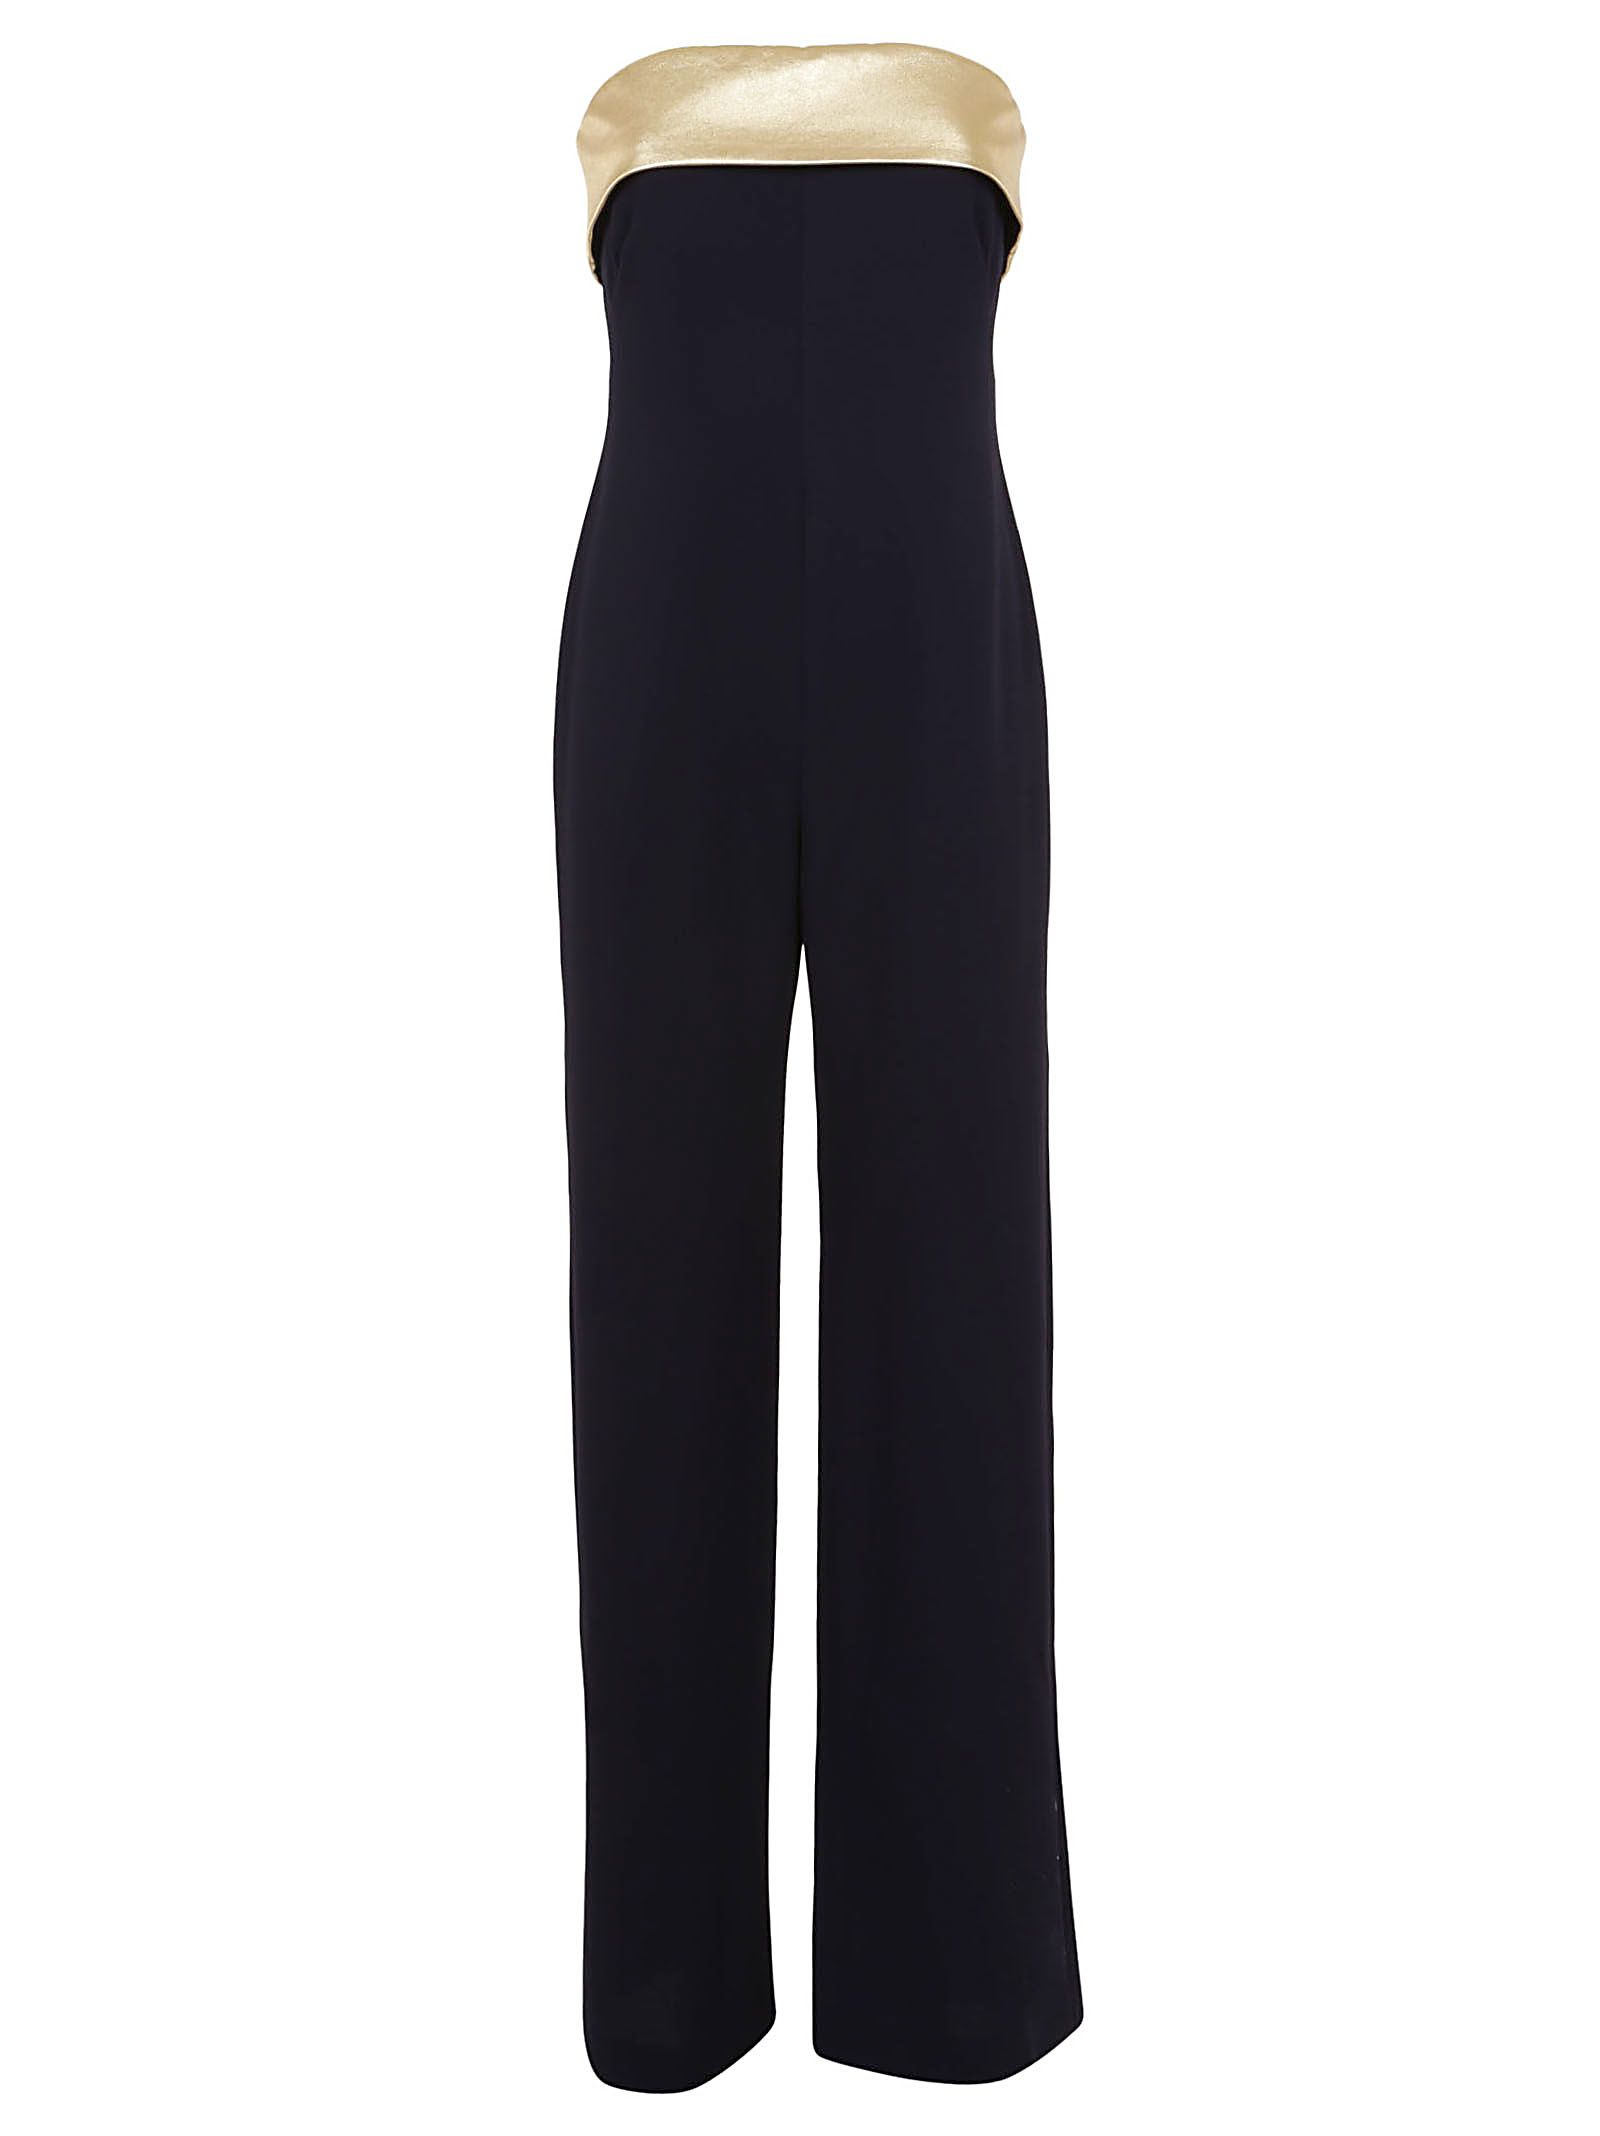 Francesca Crepe Cady Strapless Jumpsuit in Midnight